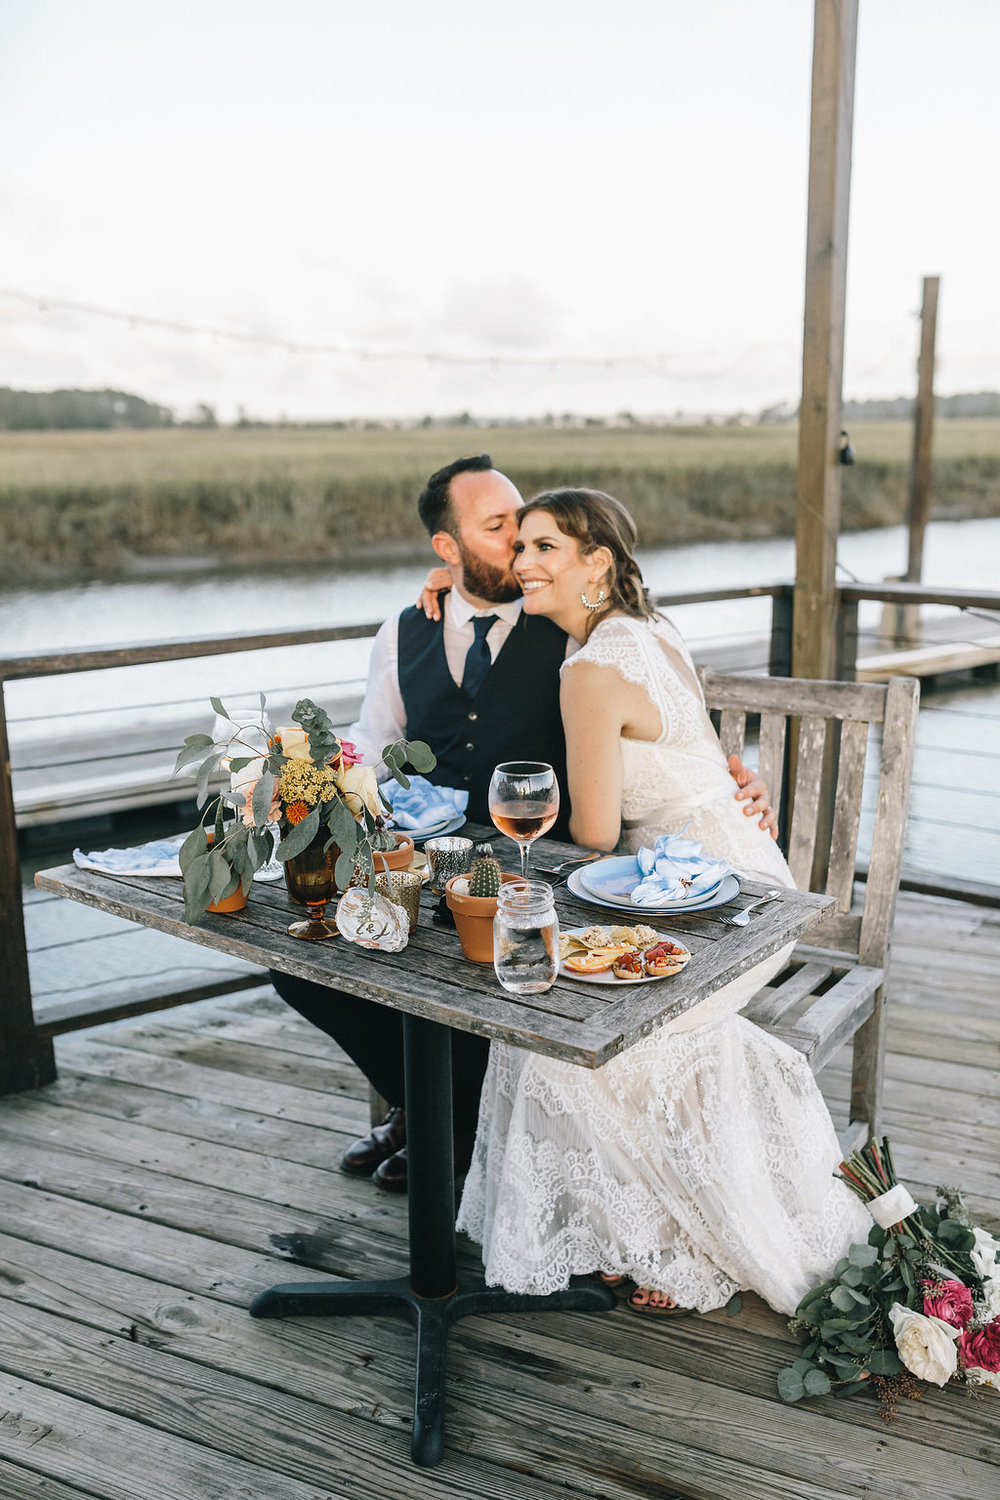 ivory-and-beau-bridal-boutique-james-and-adrienne-mackensey-alexander-photography-the-wyld-dock-bar-wedding-47.jpg